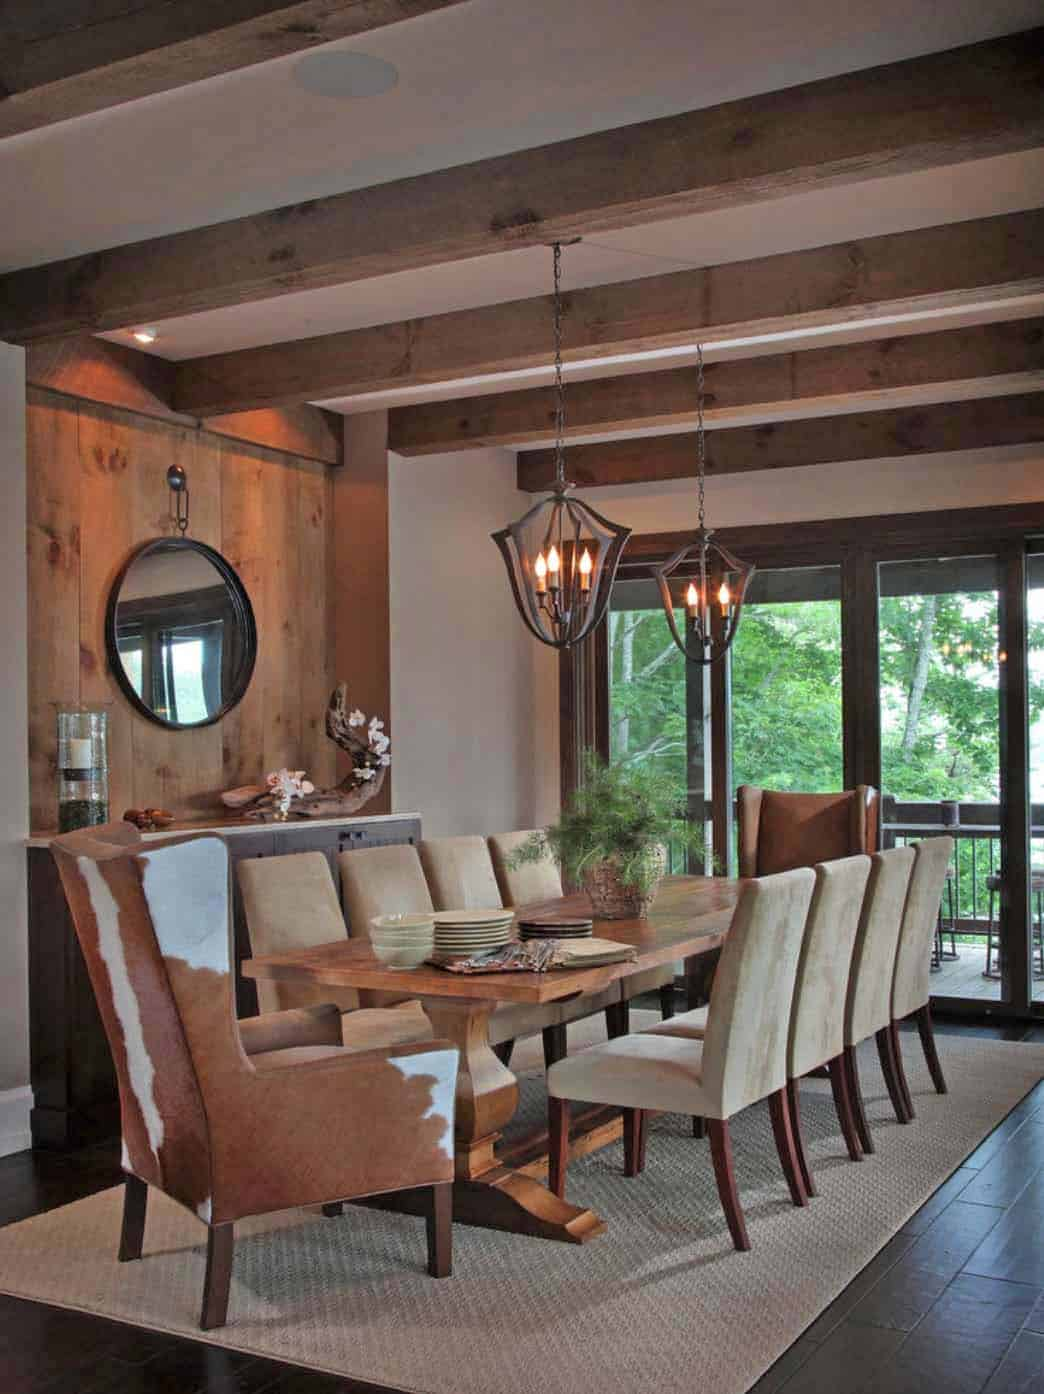 Lake-Bluff-Lodge-Modern-Rustic-Homes-03-1-Kindesign